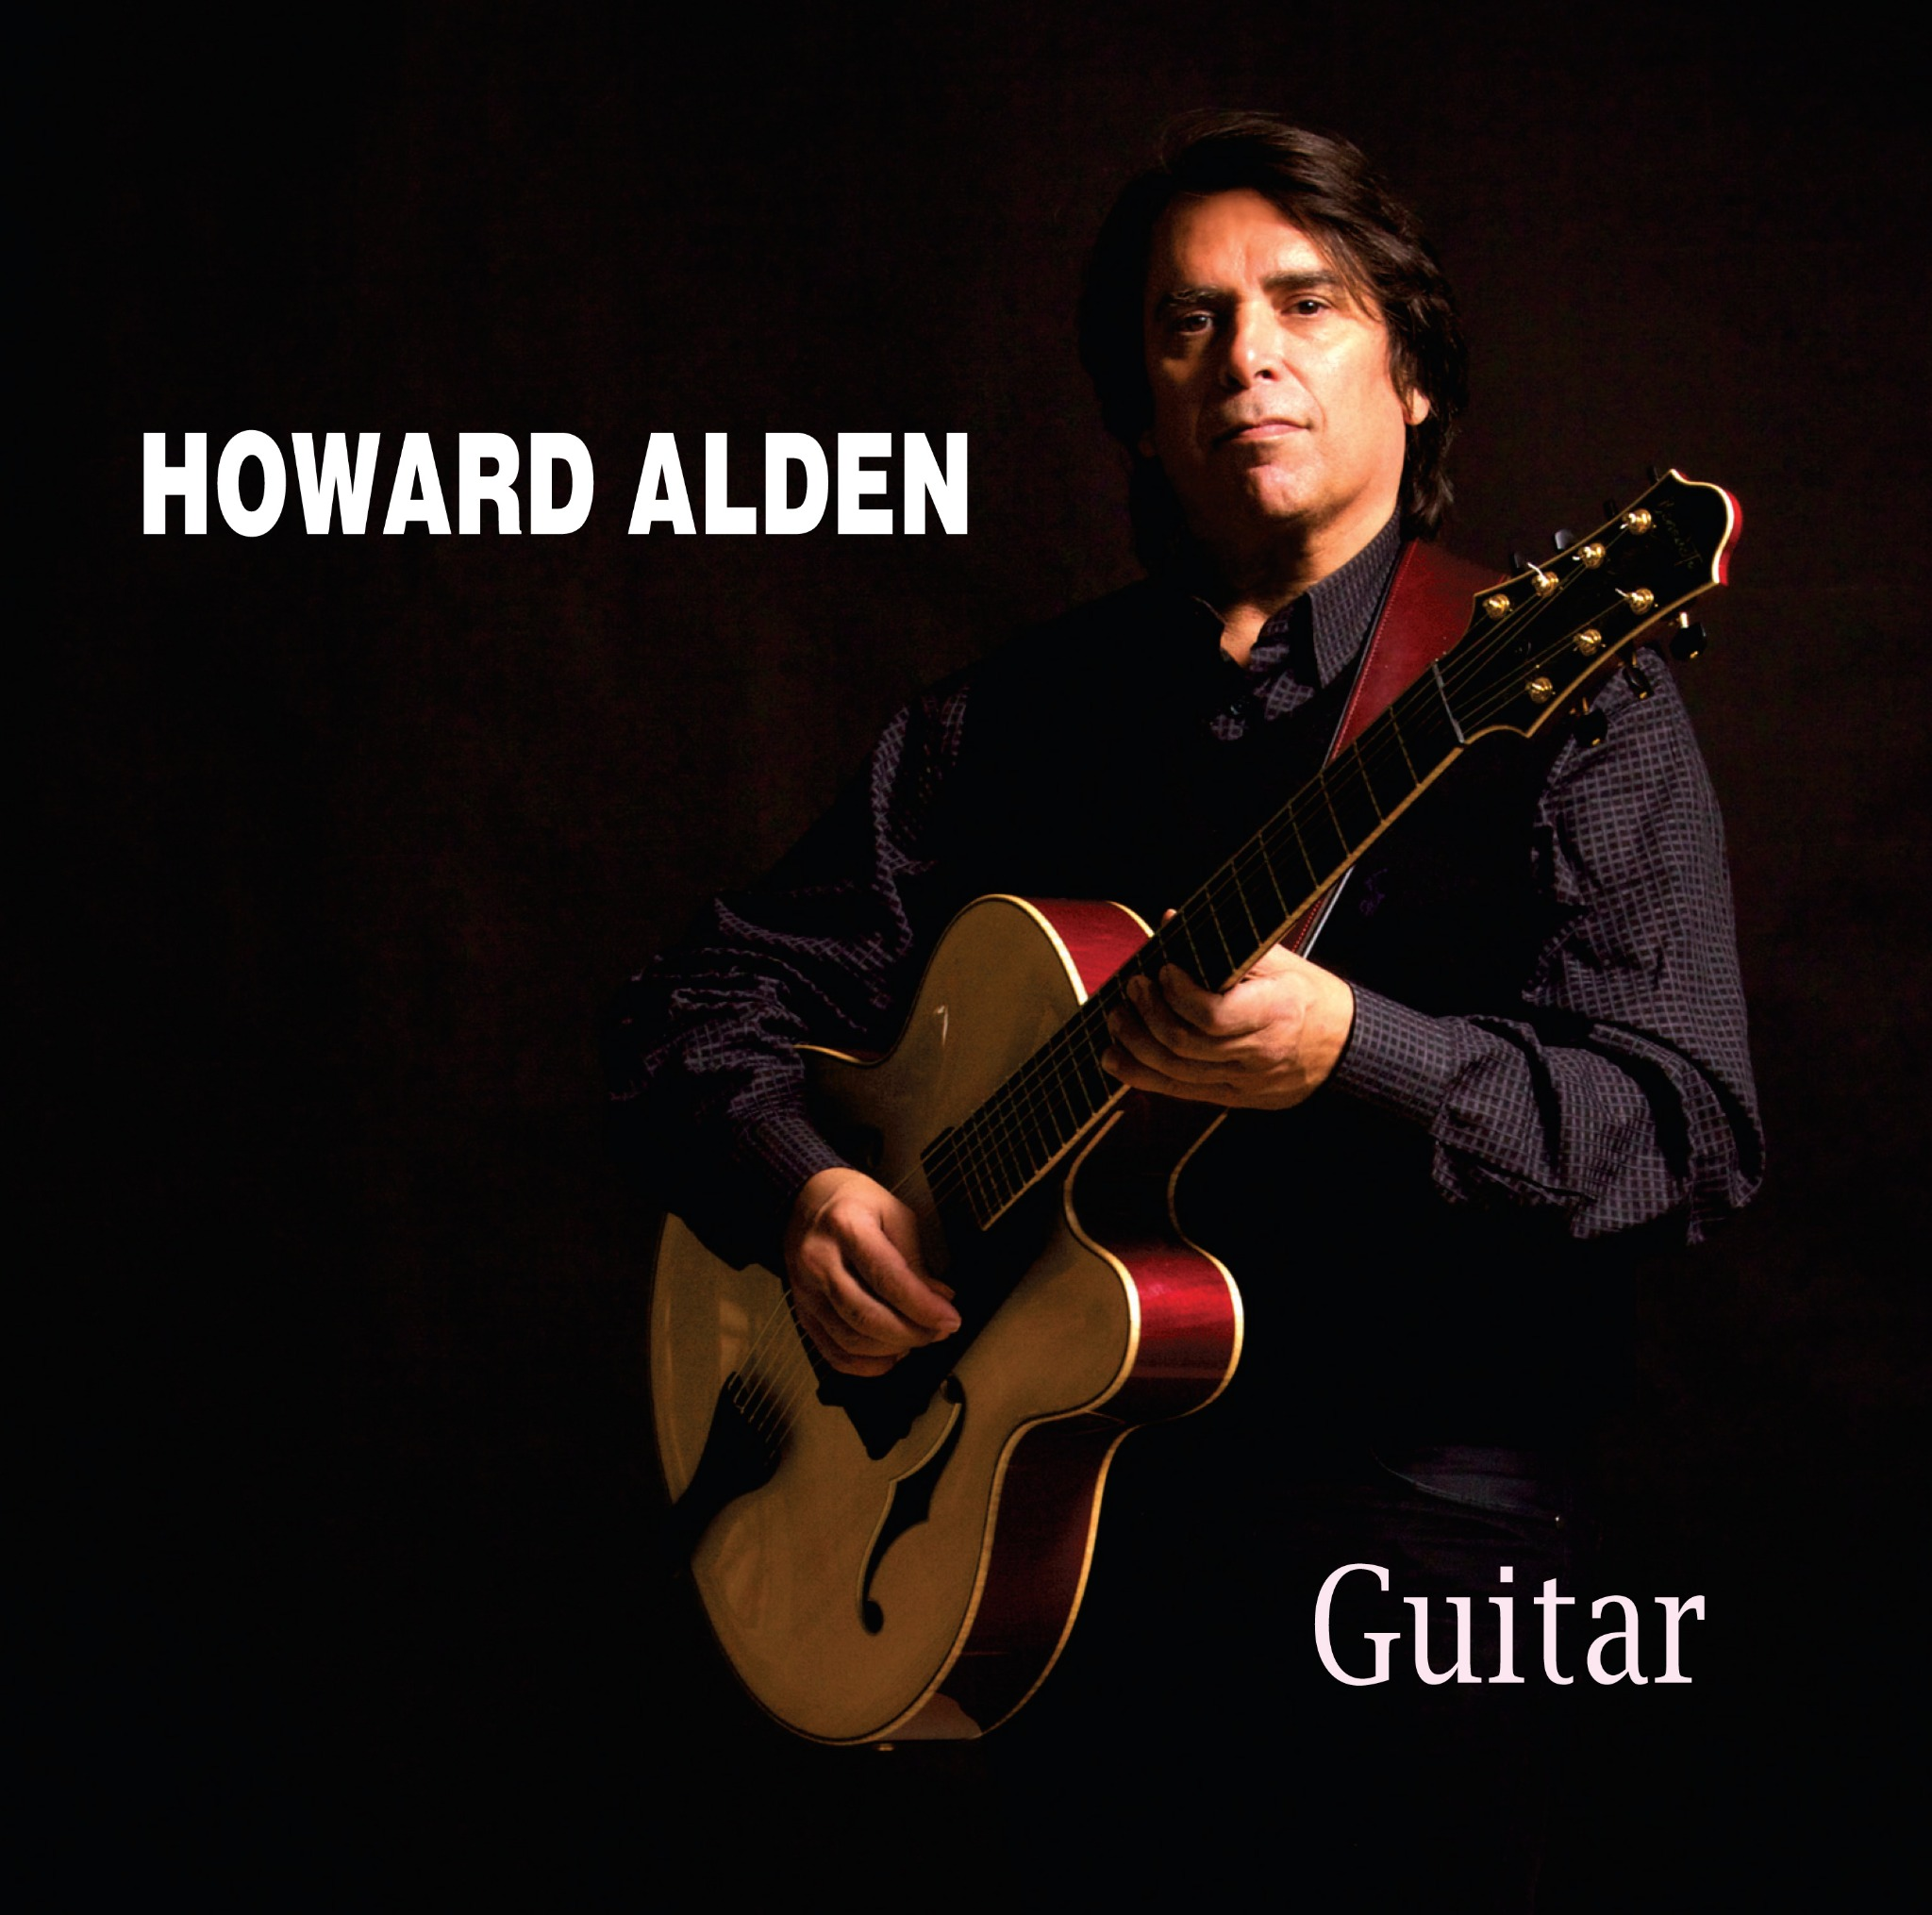 Howard Alden - GUITAR (K2B2 4469) 44.1/16-bit .FLAC